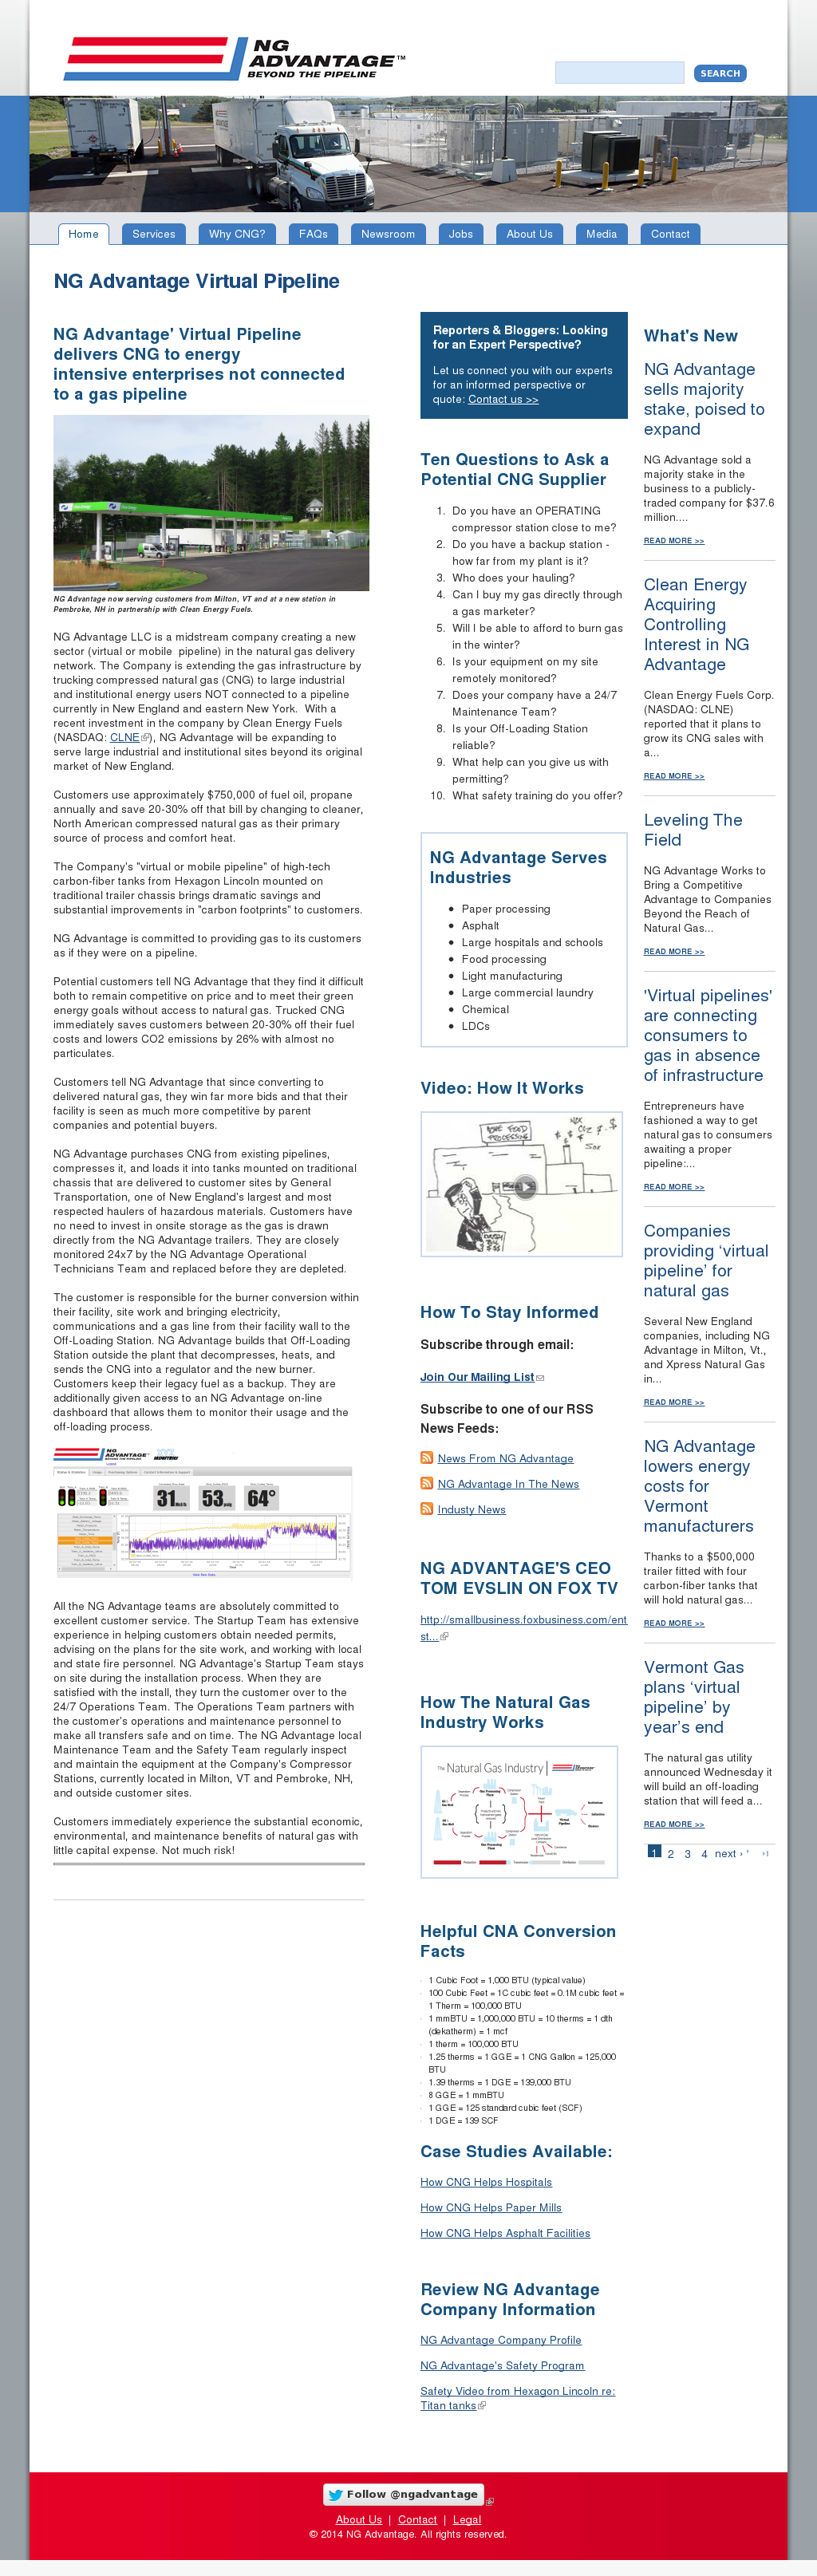 Ng Advantage S Latest News Blogs Press Releases Videos